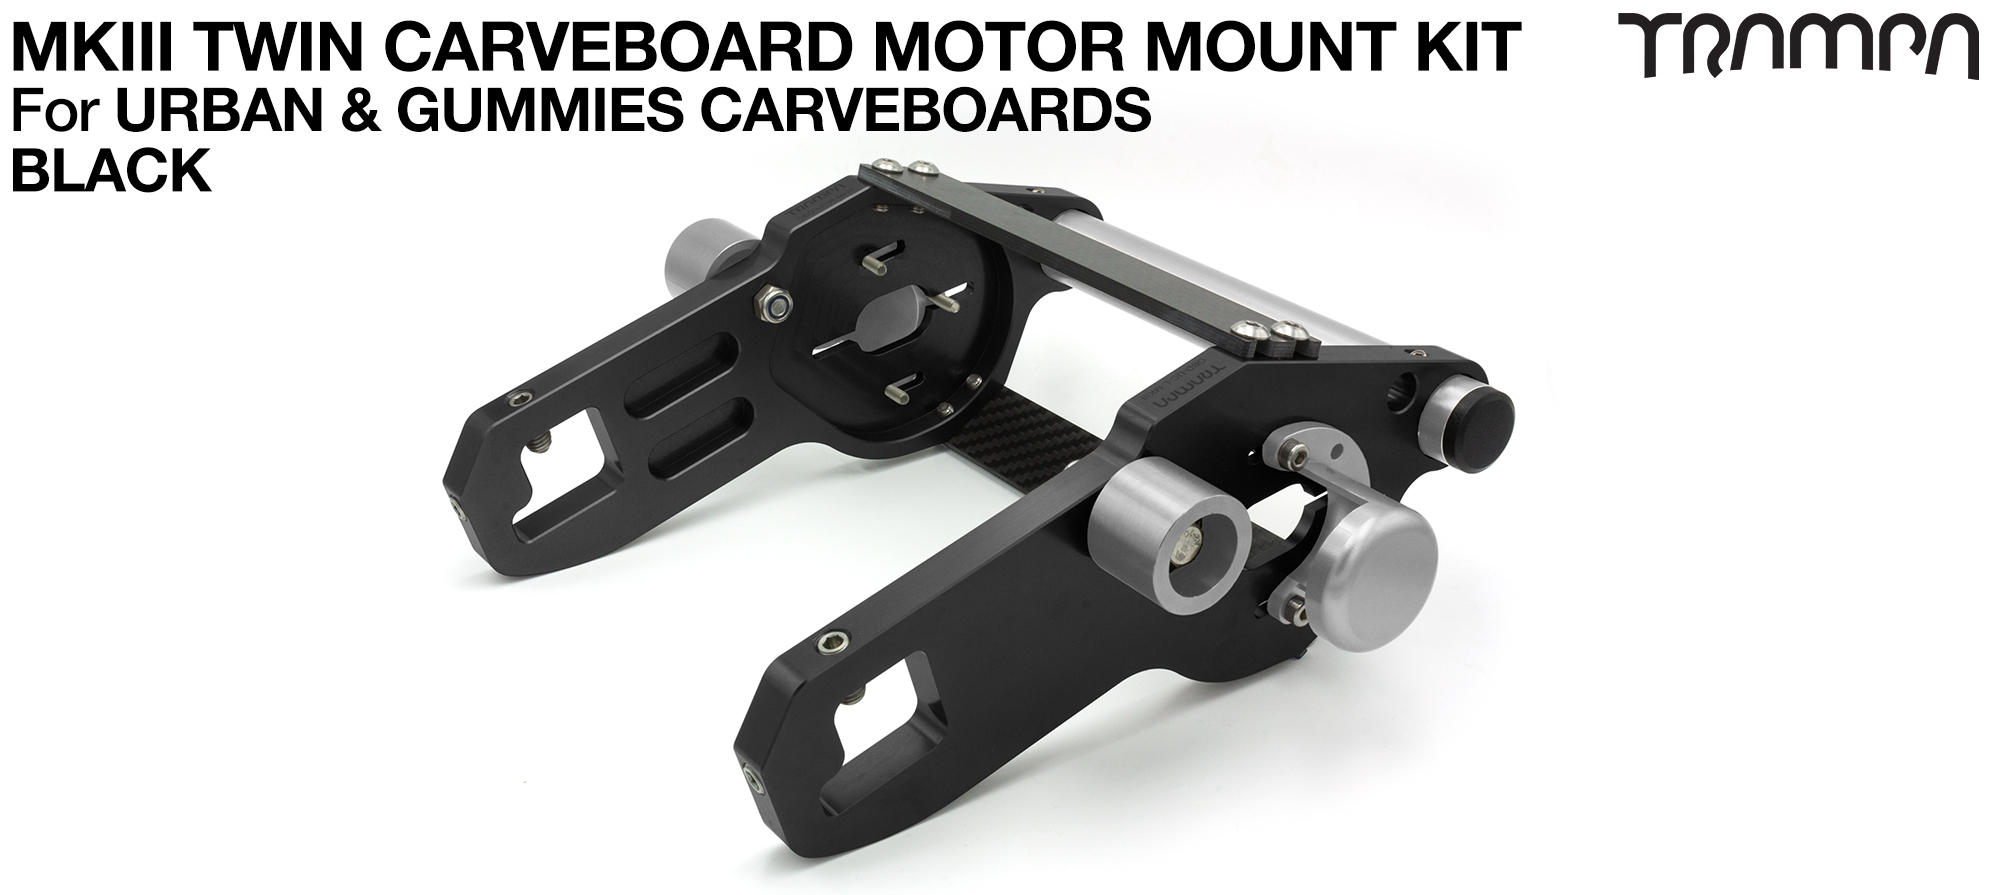 MkIII CARVE BOARD Motor Mount Kit - TWIN BLACK